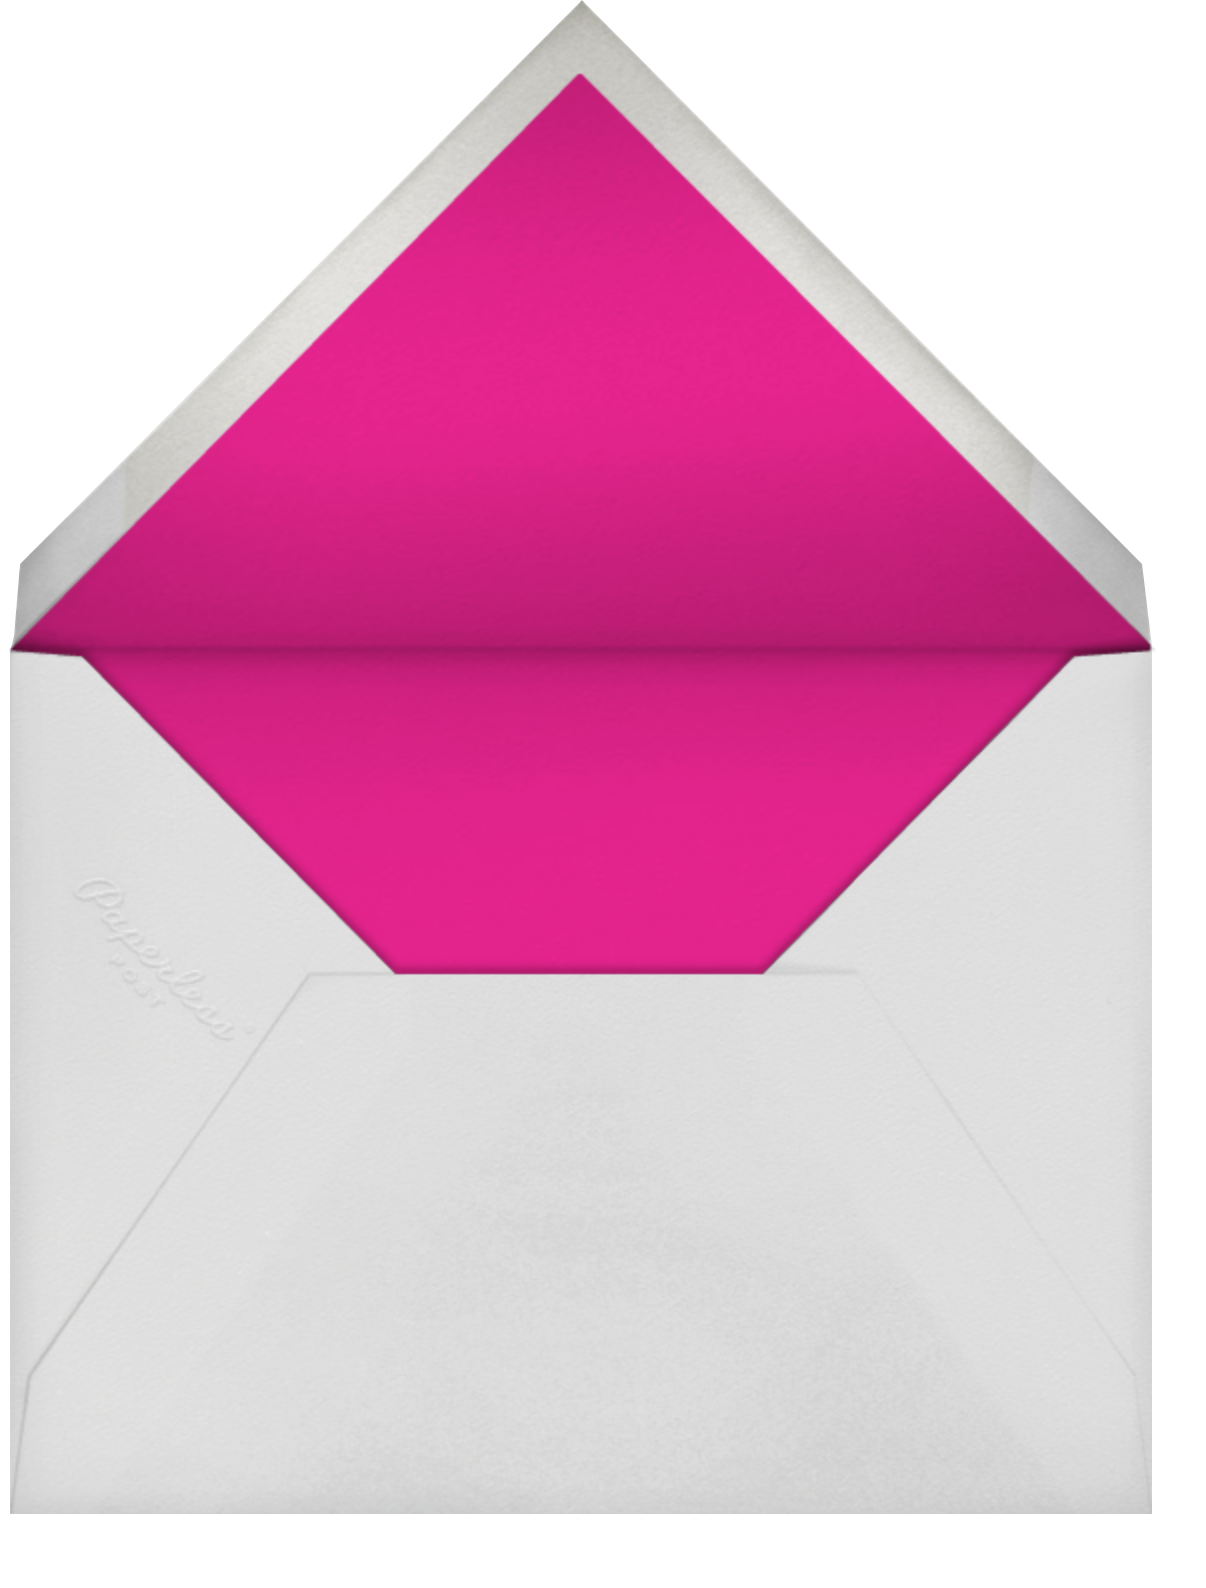 Sateenkaari - Pink - Marimekko - General entertaining - envelope back